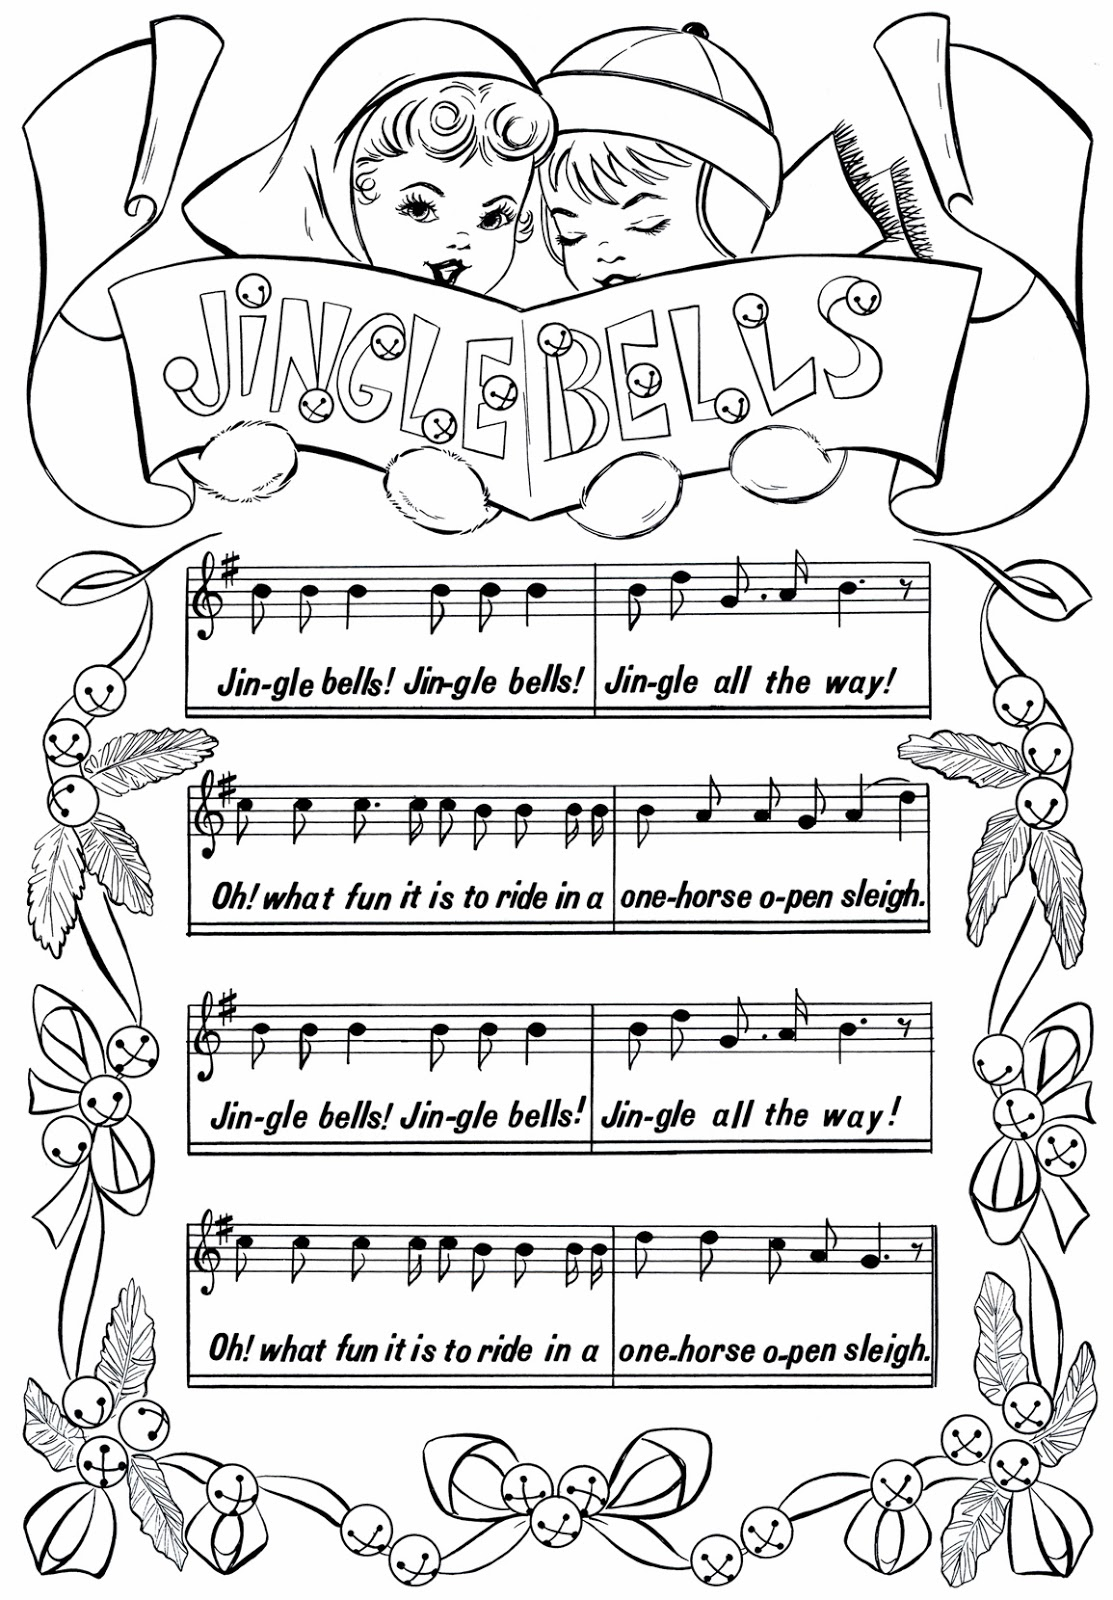 12 Days Of Christmas Lyrics Worksheet